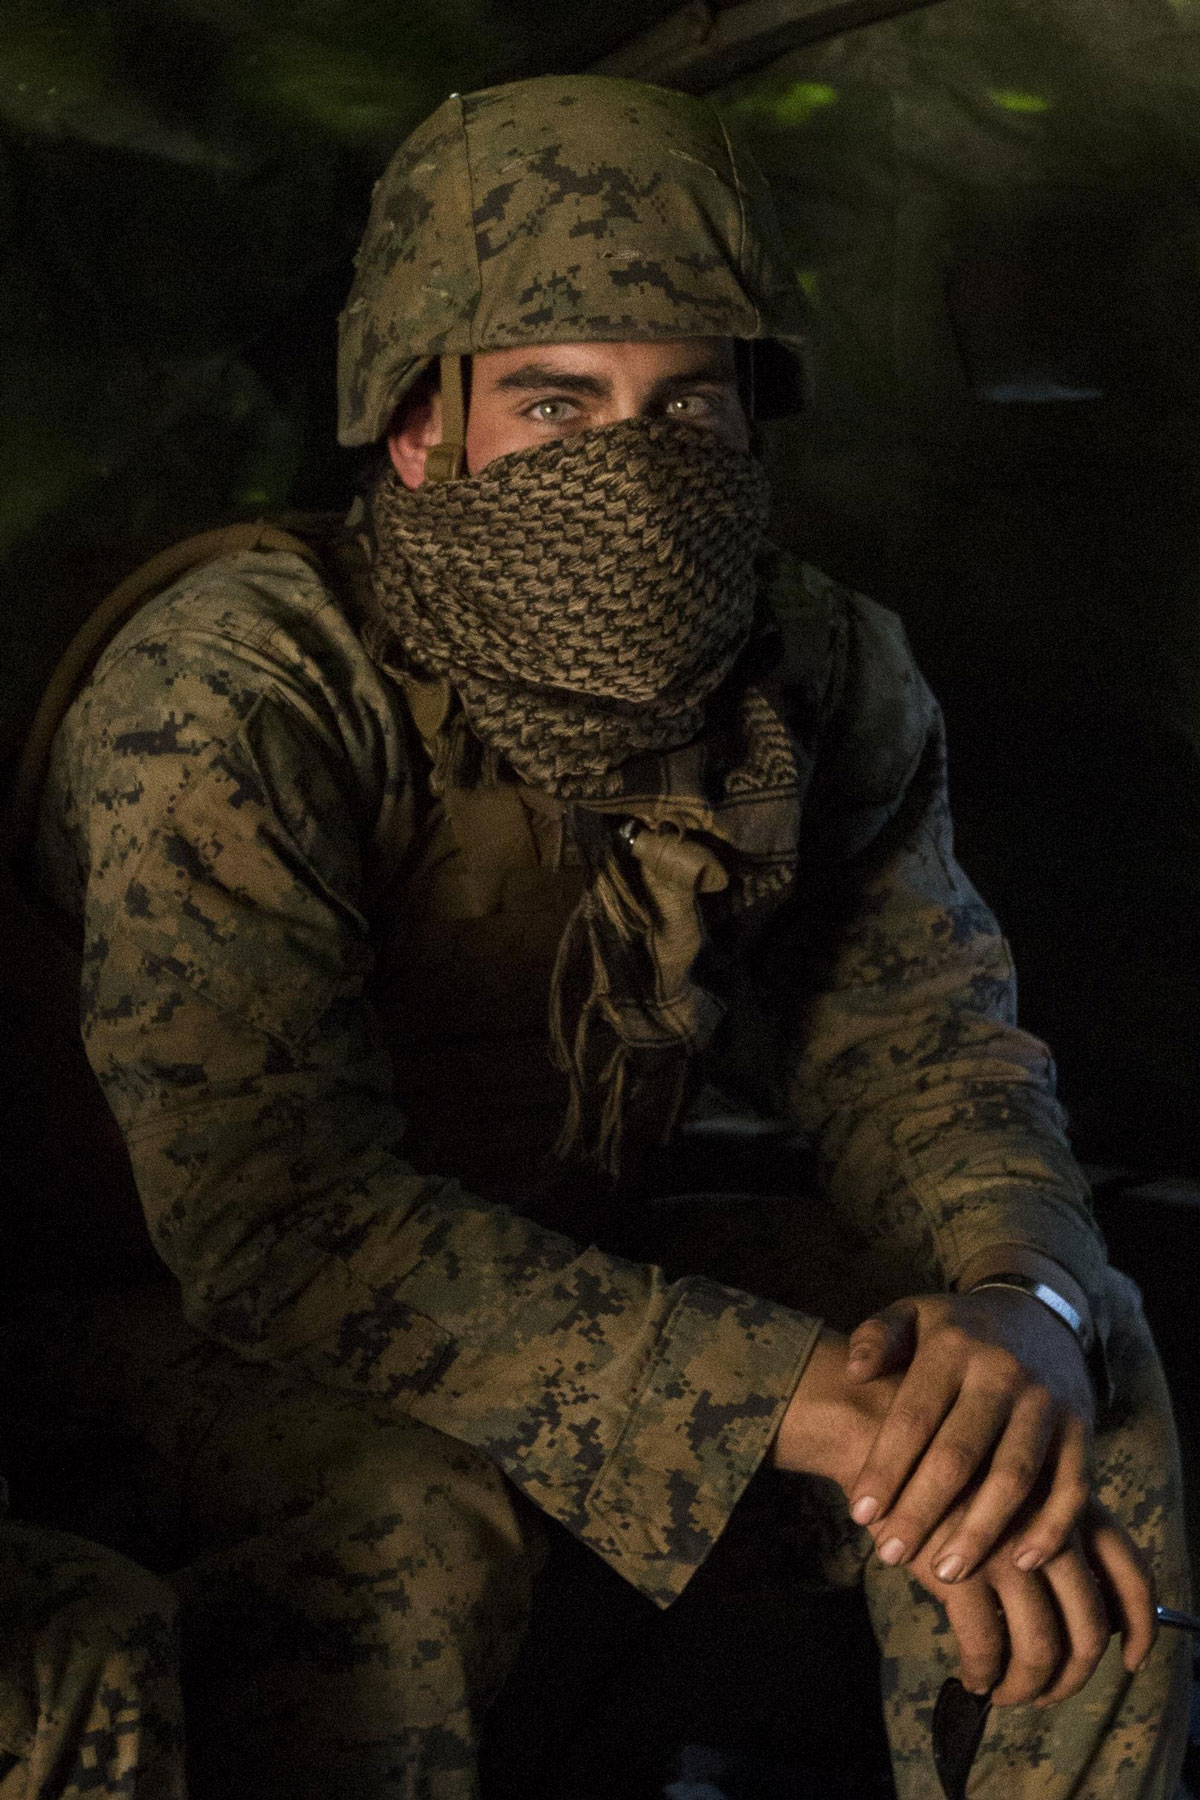 Lance Cpl. Michael Ruiz, a mechanic with Combat Logistics Battalion 31, sits inside a 7-ton truck before small-arms and machine gun marksmanship training on Townshend Island, Shoalwater Bay Training Area, Queensland, Australia, during Exercise Talisman Saber 17.